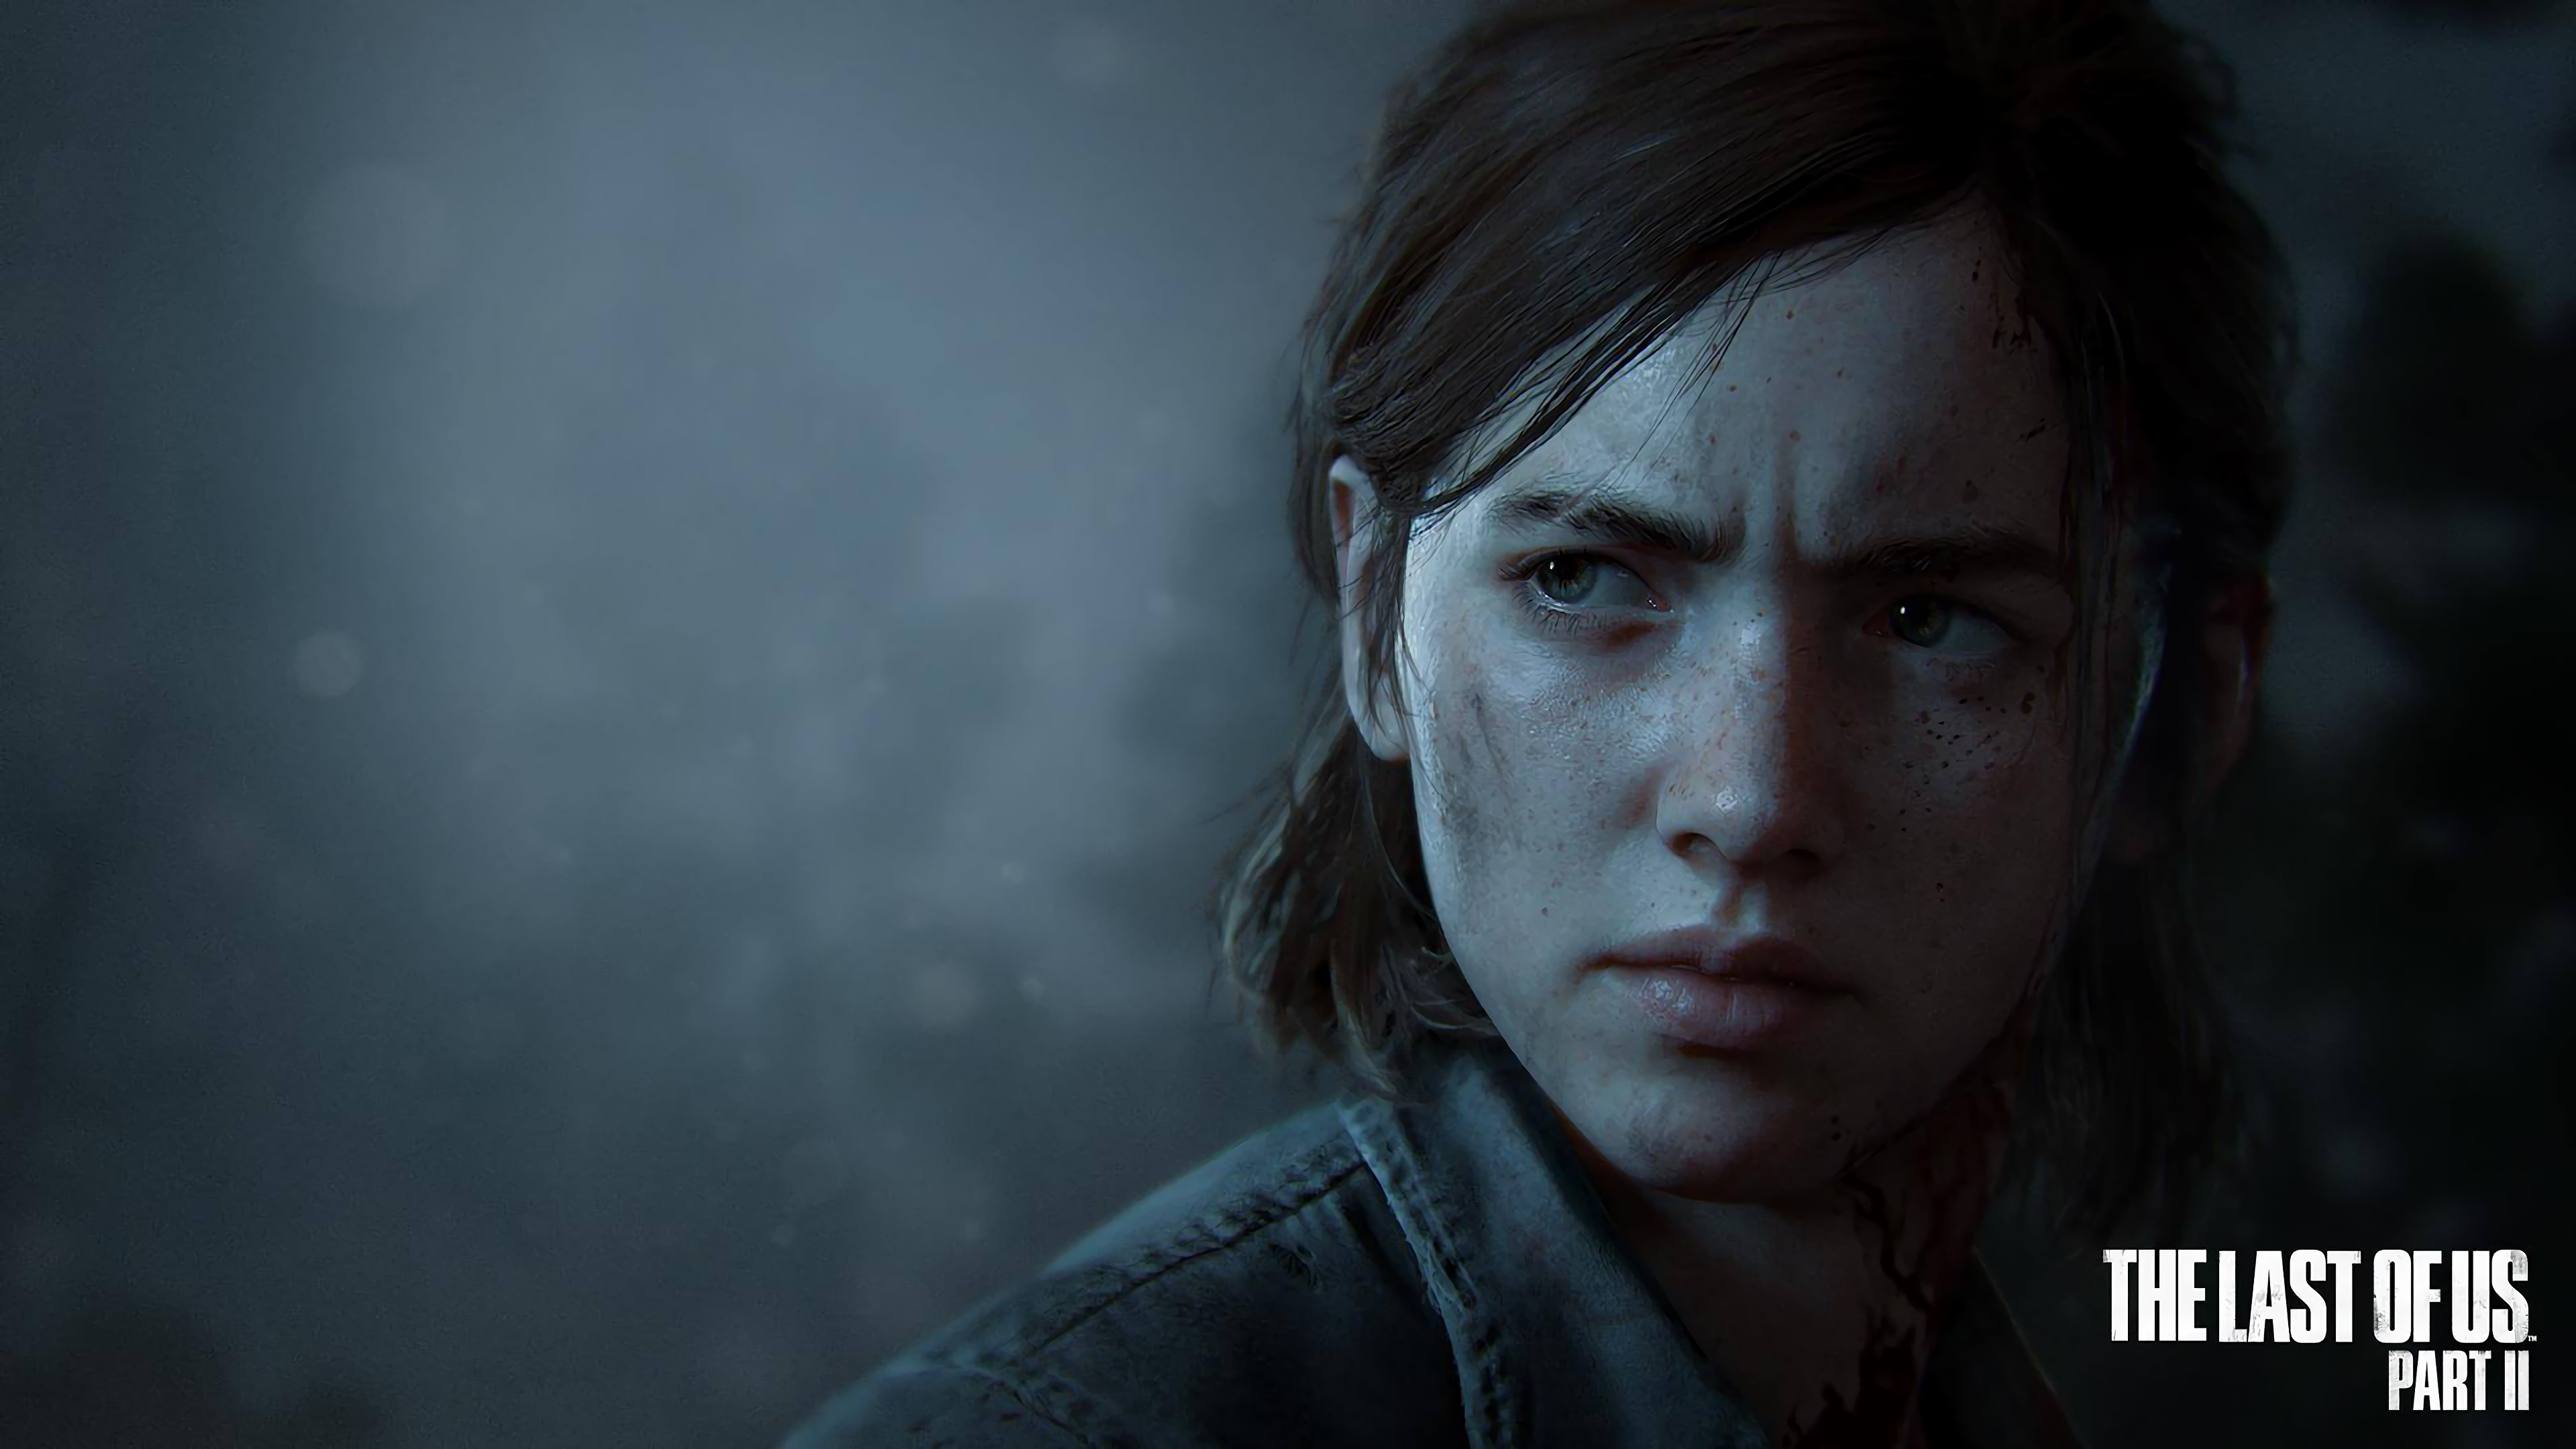 The Last Of Us 2 Wallpapers Top Free The Last Of Us 2